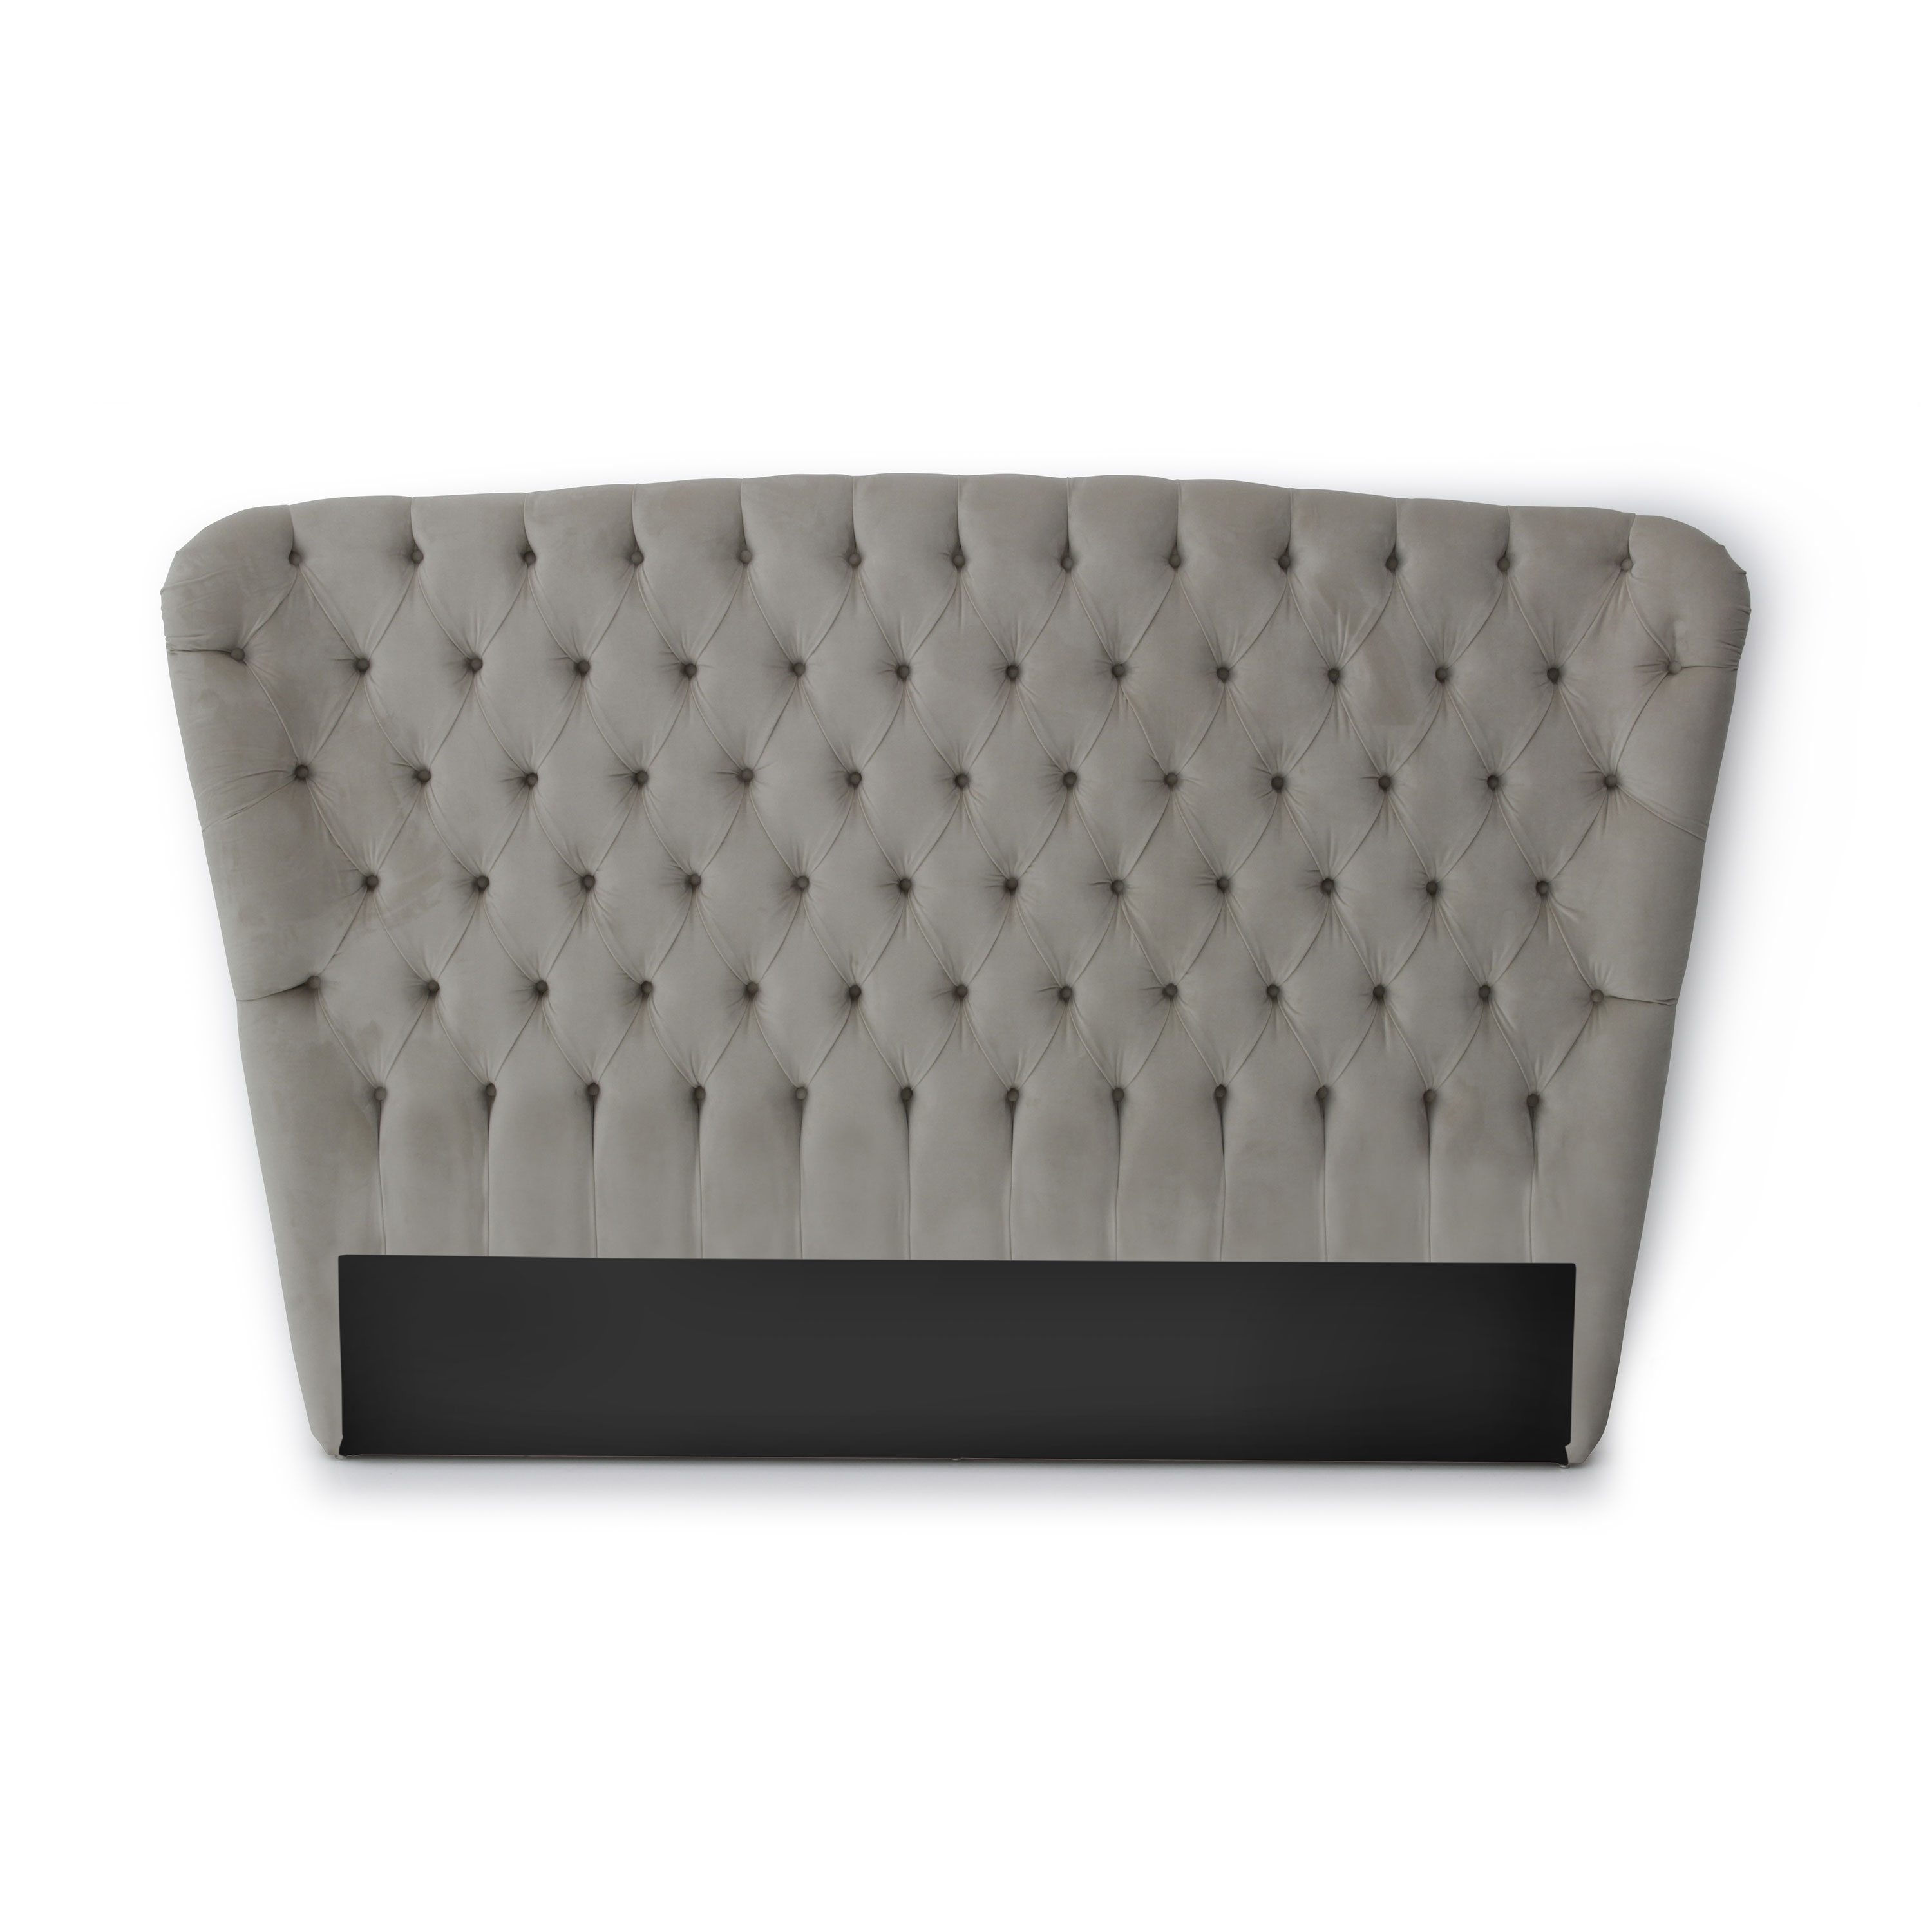 ideas laminate headboard dining grey and wood fabulous fascinating background table creatodesigns com